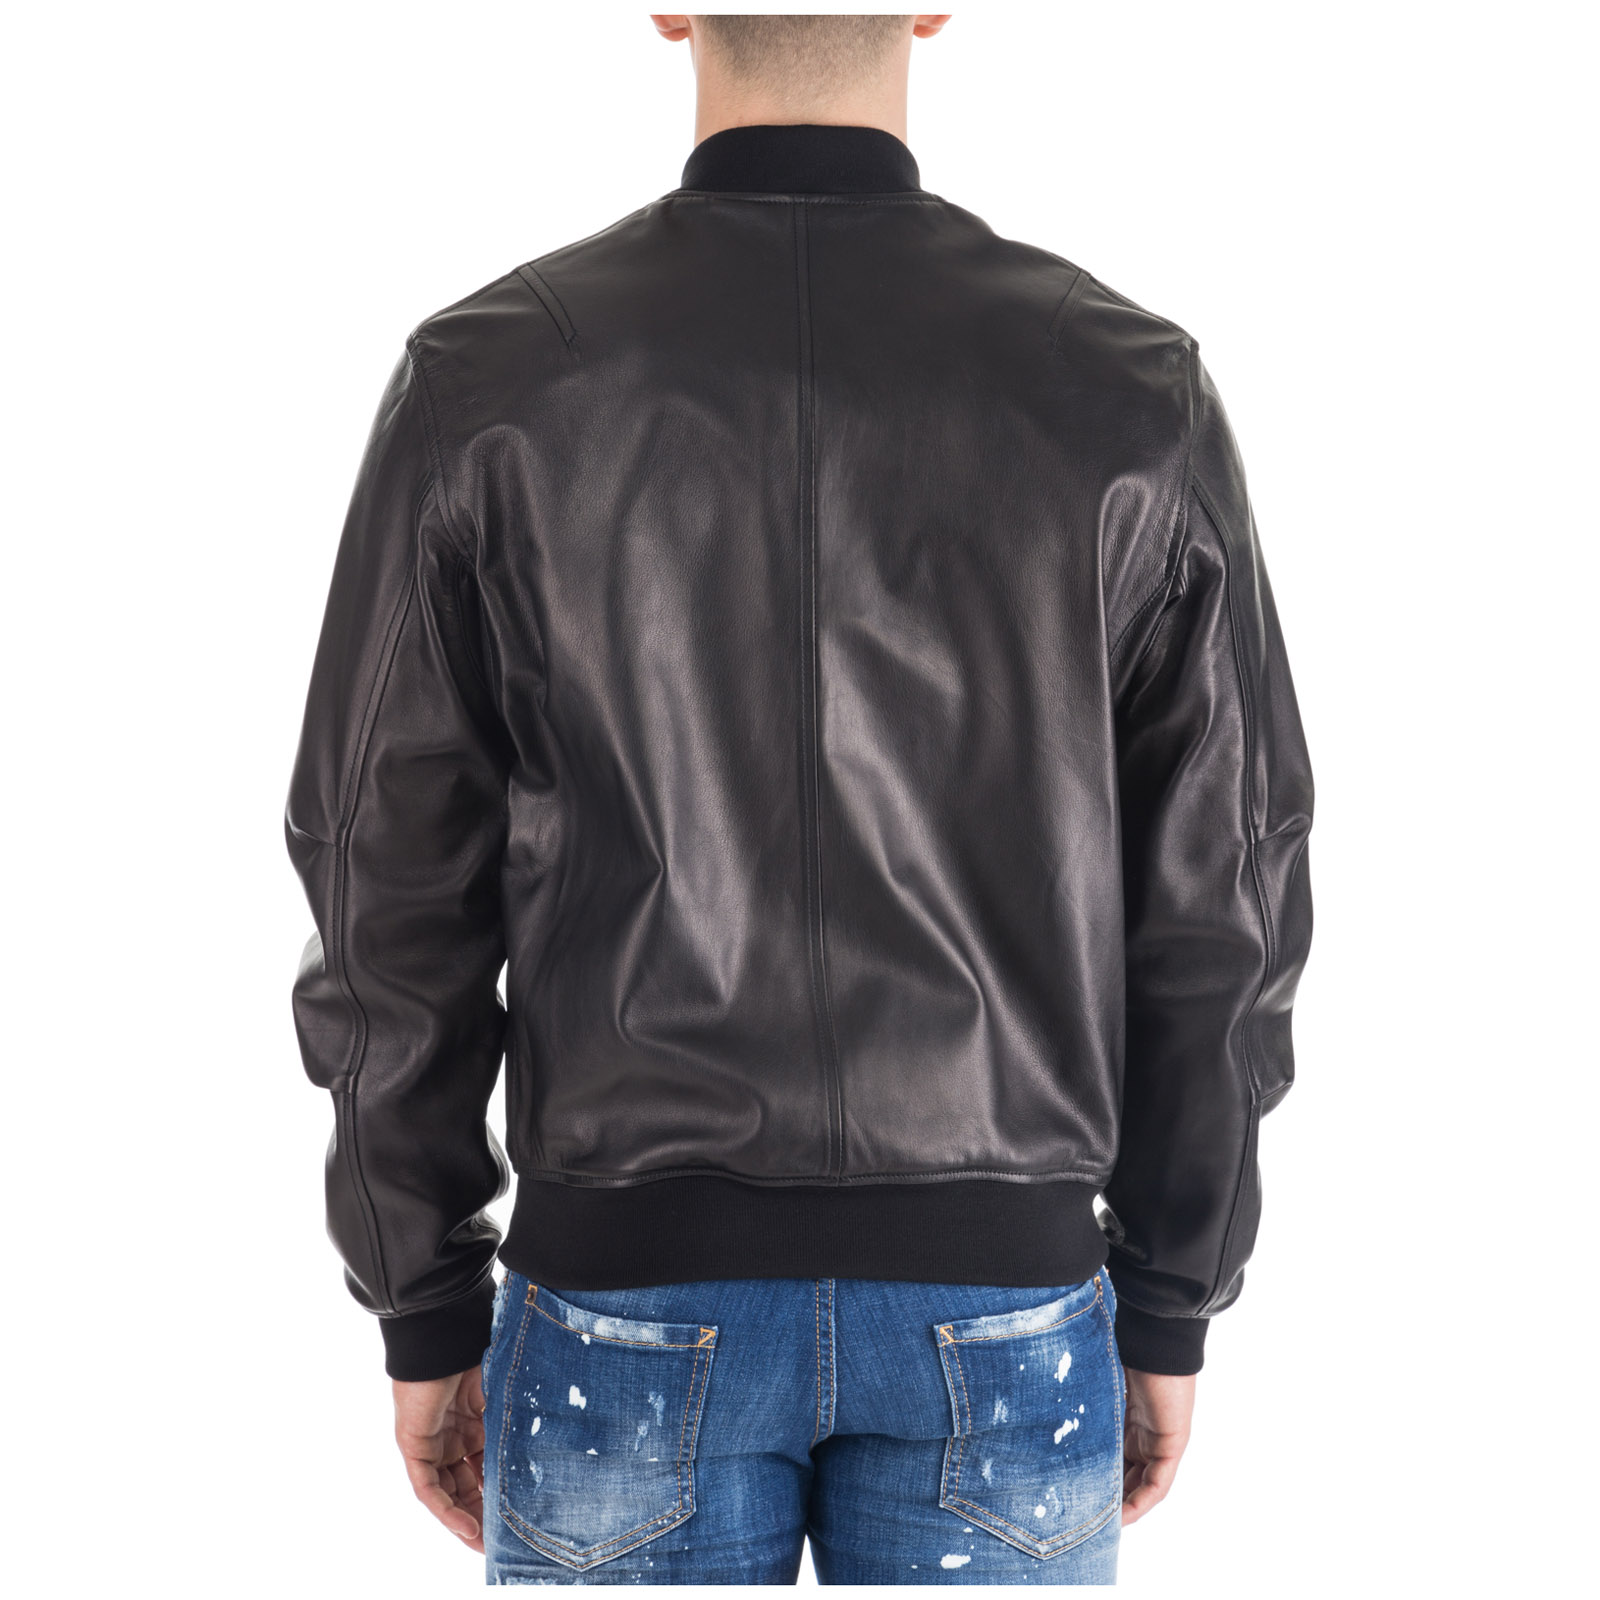 Giubbotto di pelle Dsquared2 Aviator bomber S74AM0891SY1352900 nero ... 99ed5539175